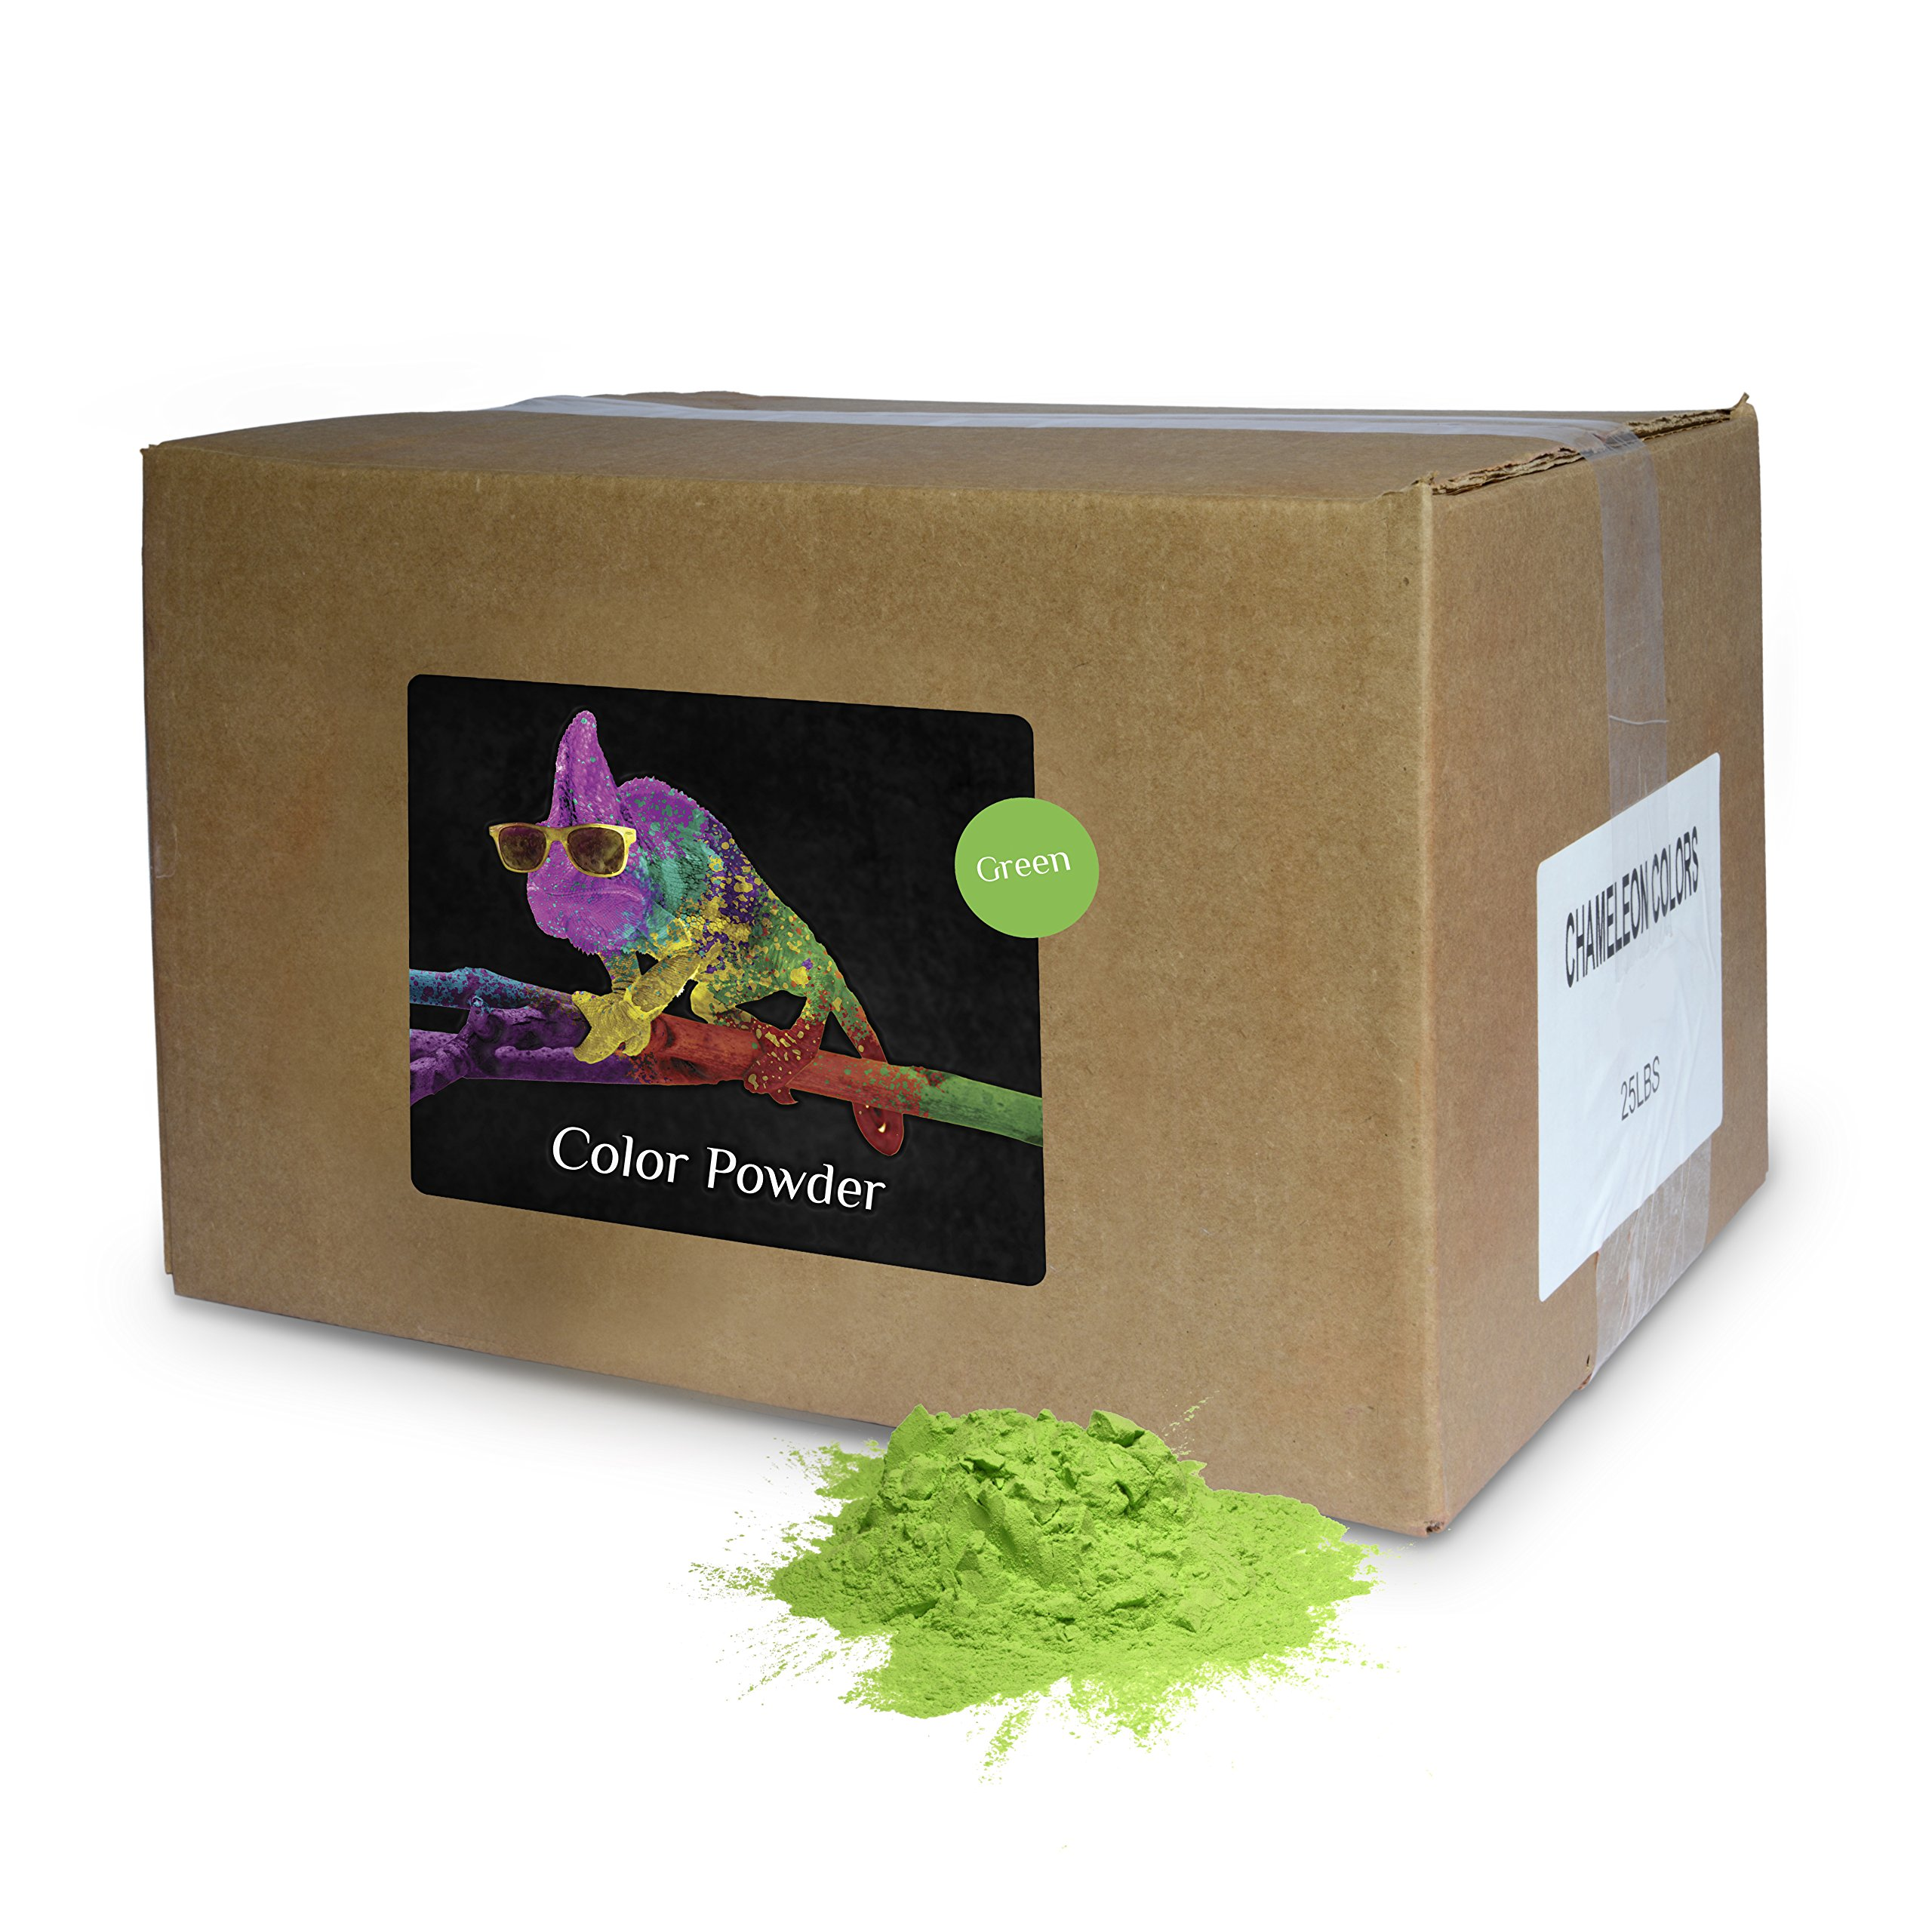 Holi Powder Bulk by Chameleon Colors - Green - 25 lbs. Pure, Authentic Fun - Perfect for a Color Race, 5k, Festival, Party or Any Other Event You Want to Make Colorful. by Chameleon Colors